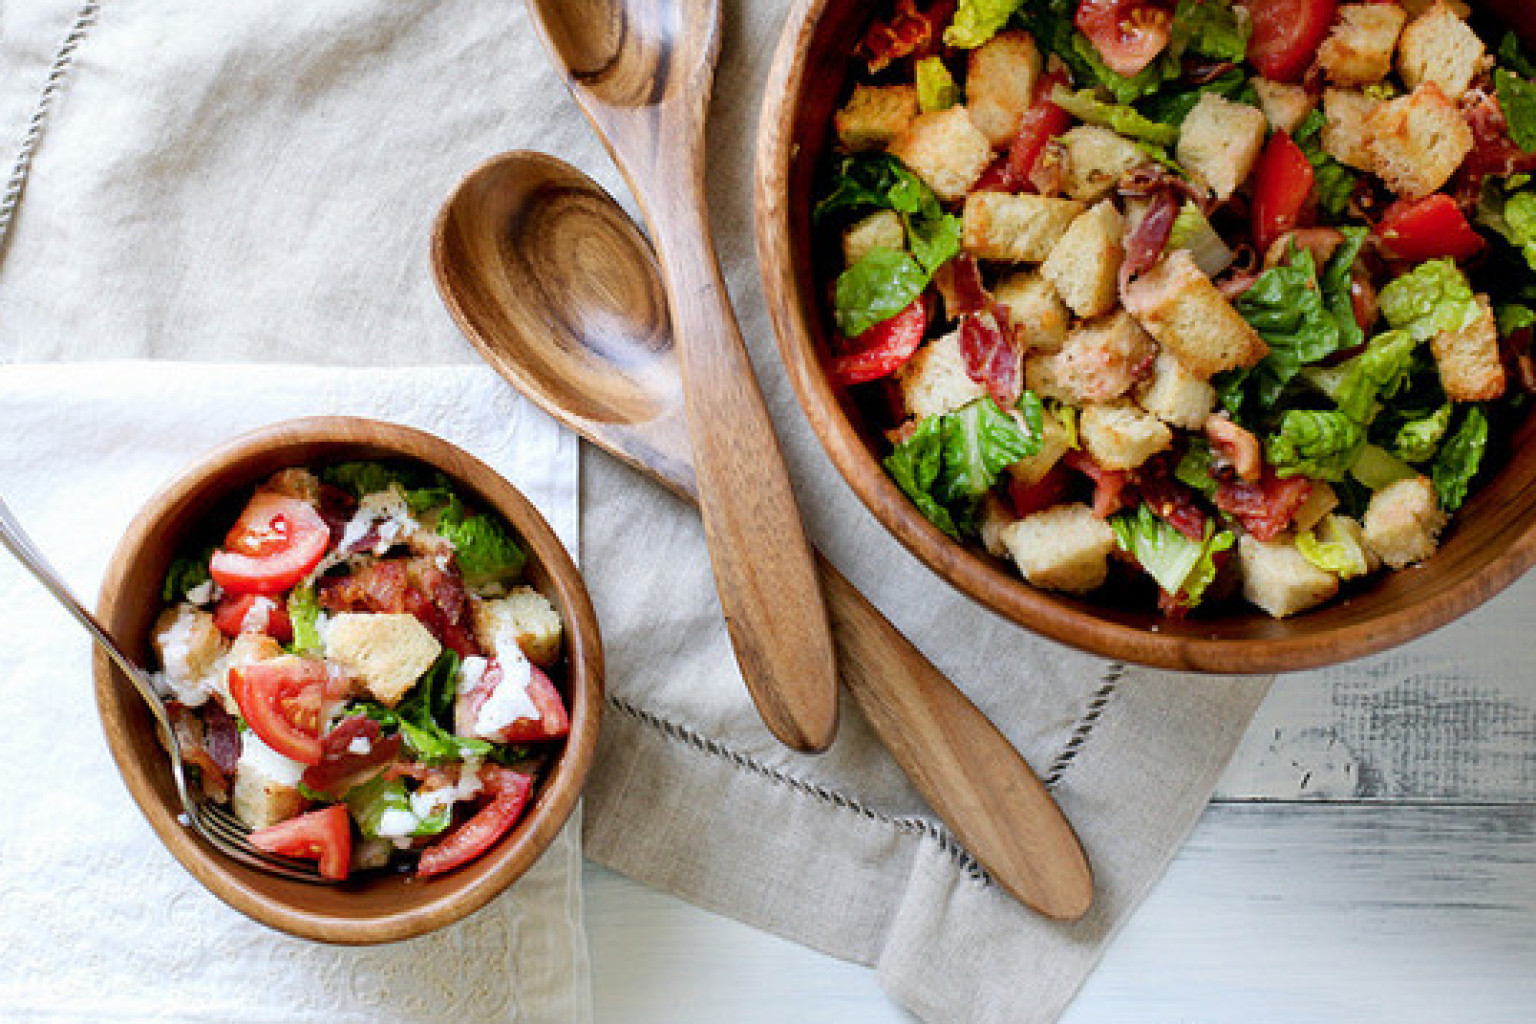 blt-bacon-PANZANELLA-SALAD-RECIPES-BREAD-croutons